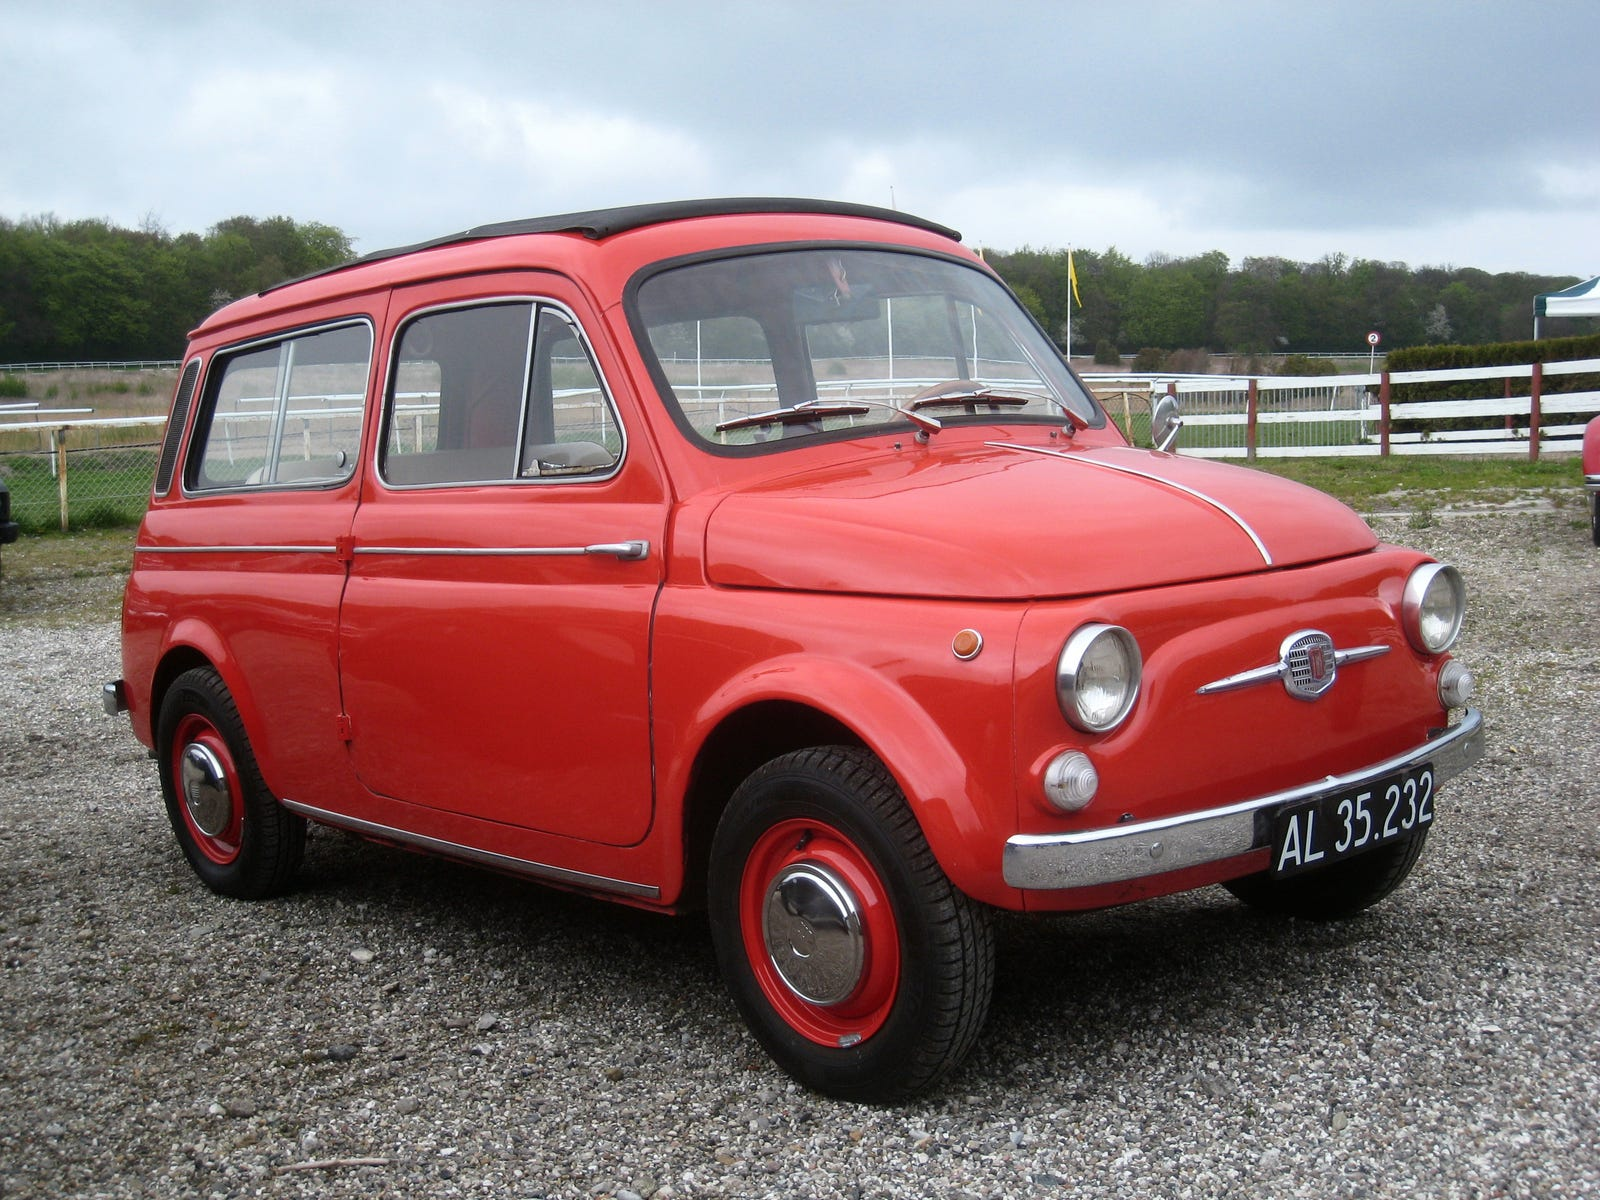 An early FIAT 500 Giardiniera - earlier FIAT 500D or 500F-based models also featured the characteristic 'moustache' FIAT emblem on the nose of the car, as seen here.